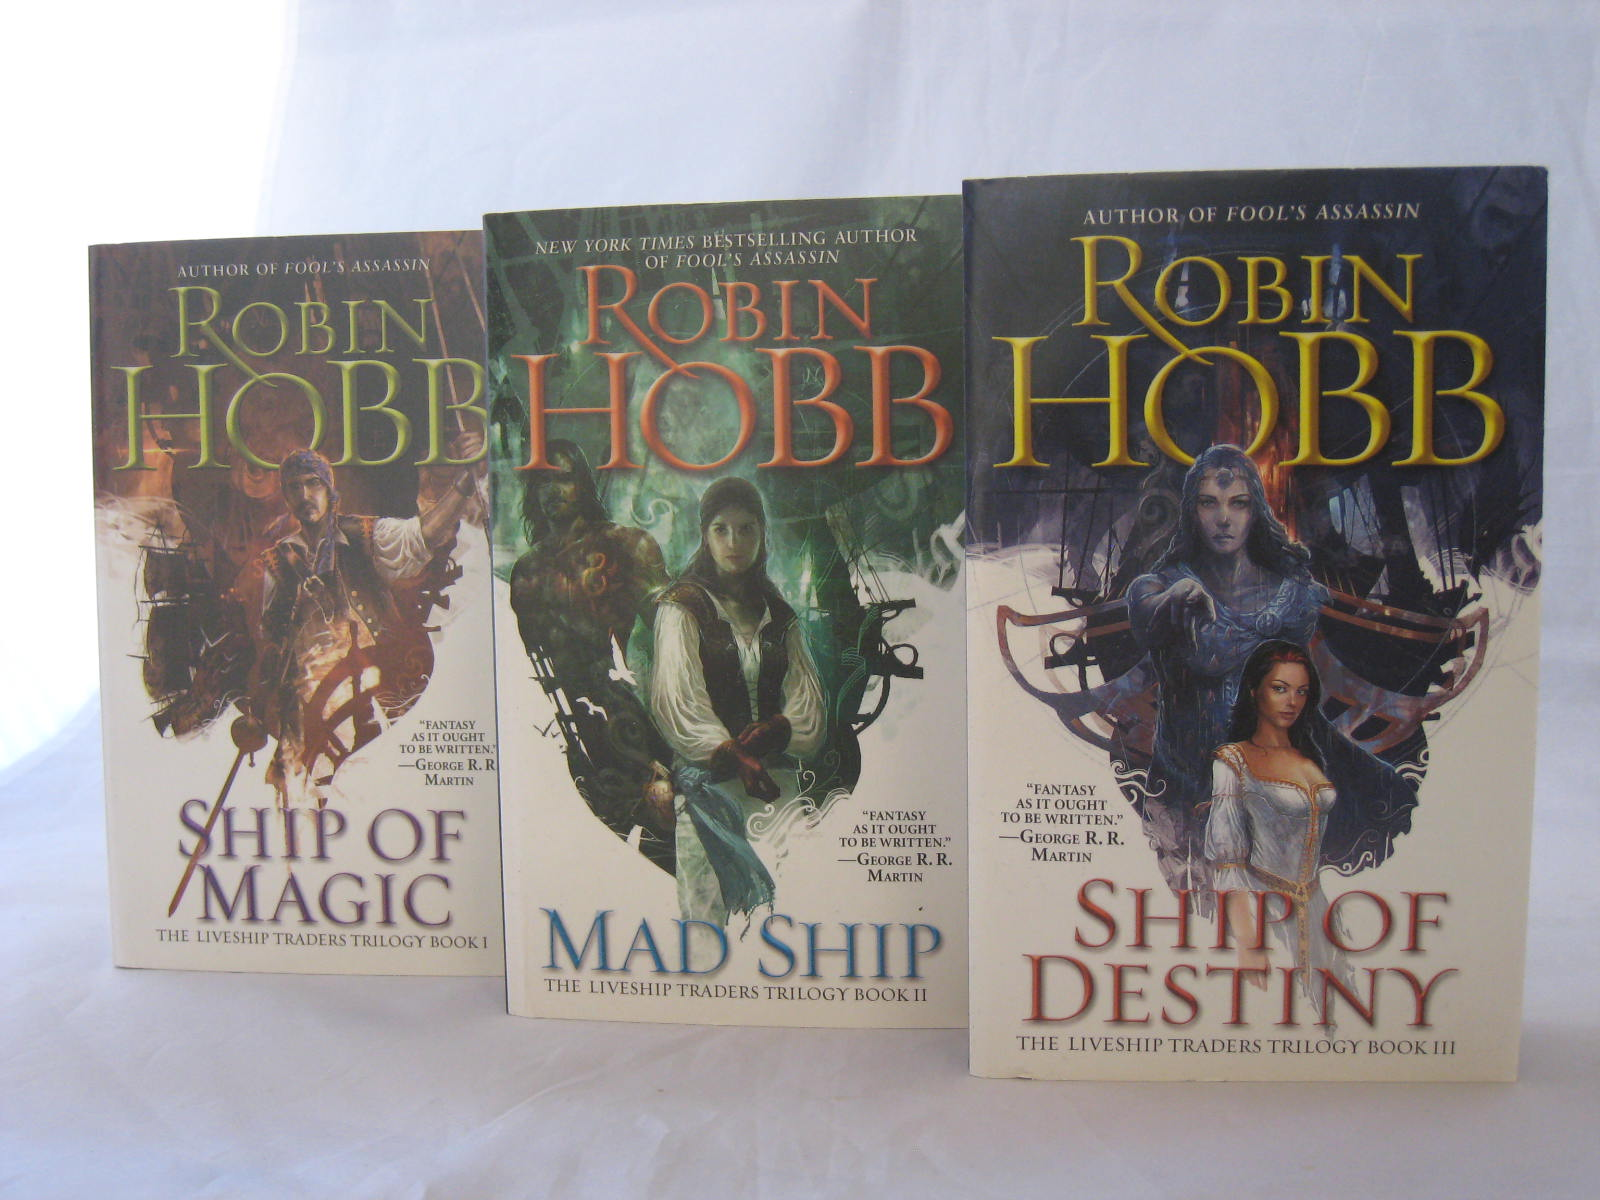 The Liveship Traders Trilogy by Robin Hobb